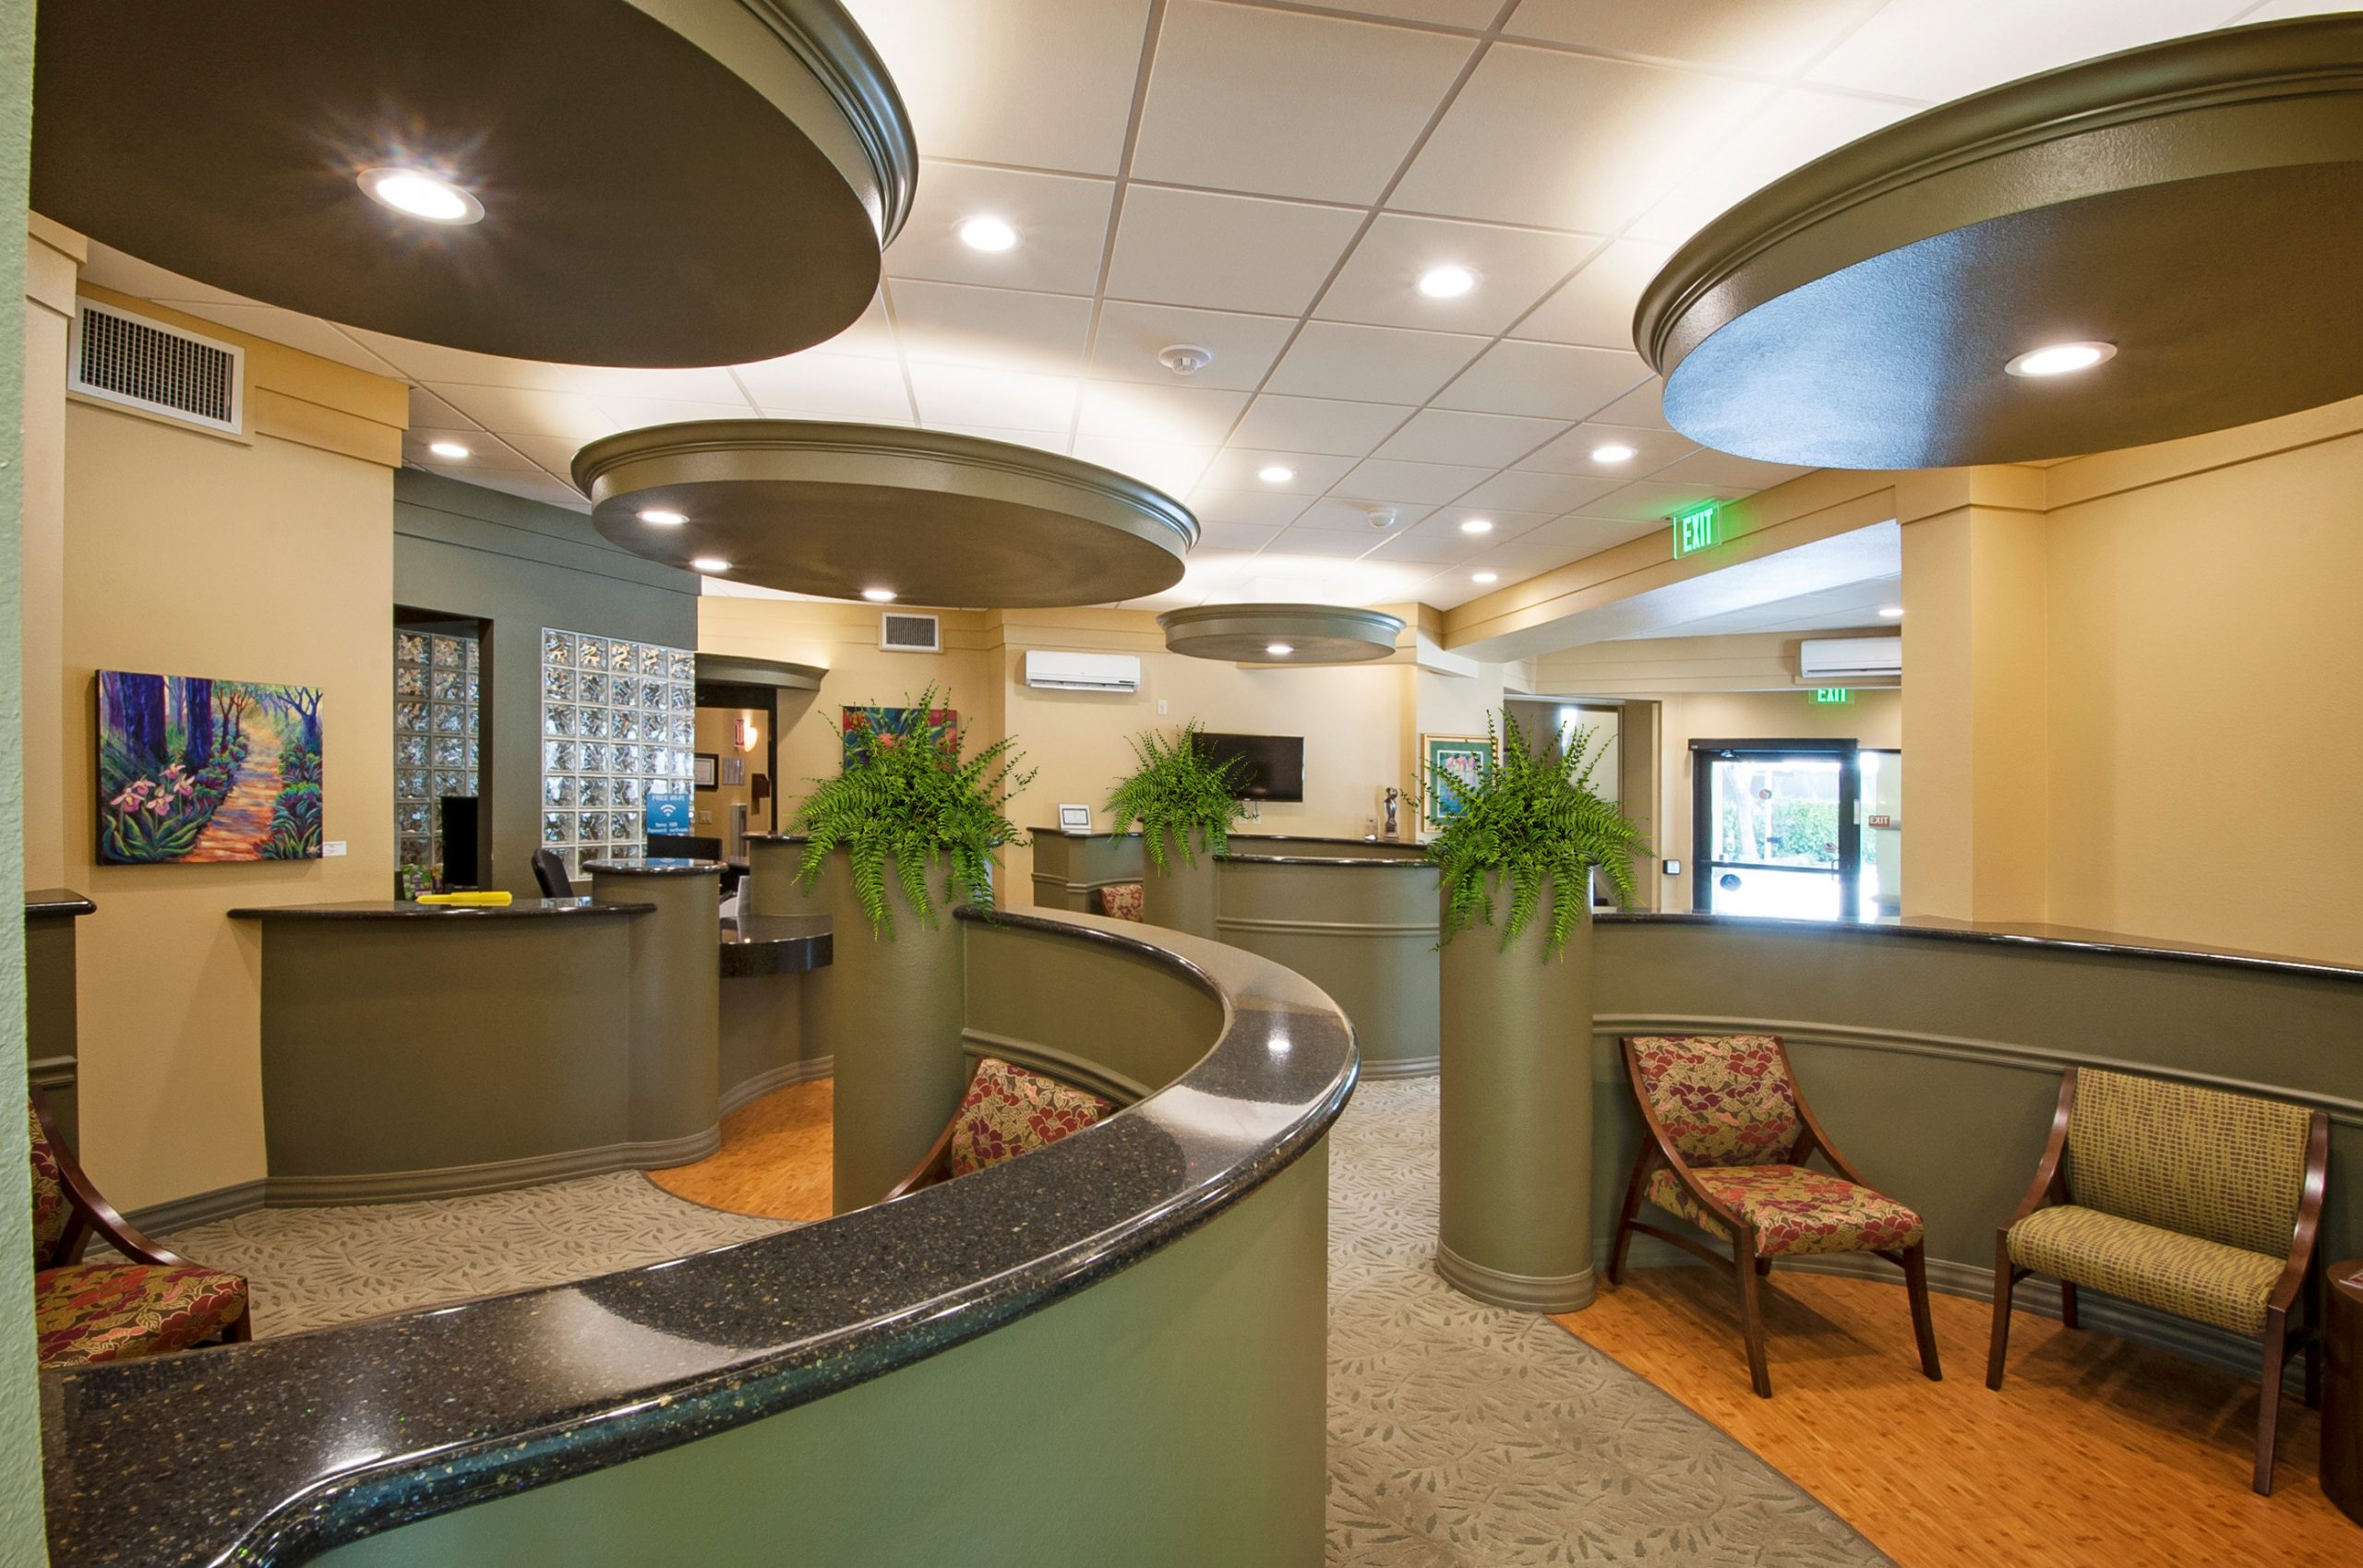 Breat Care Center with Plants JPG